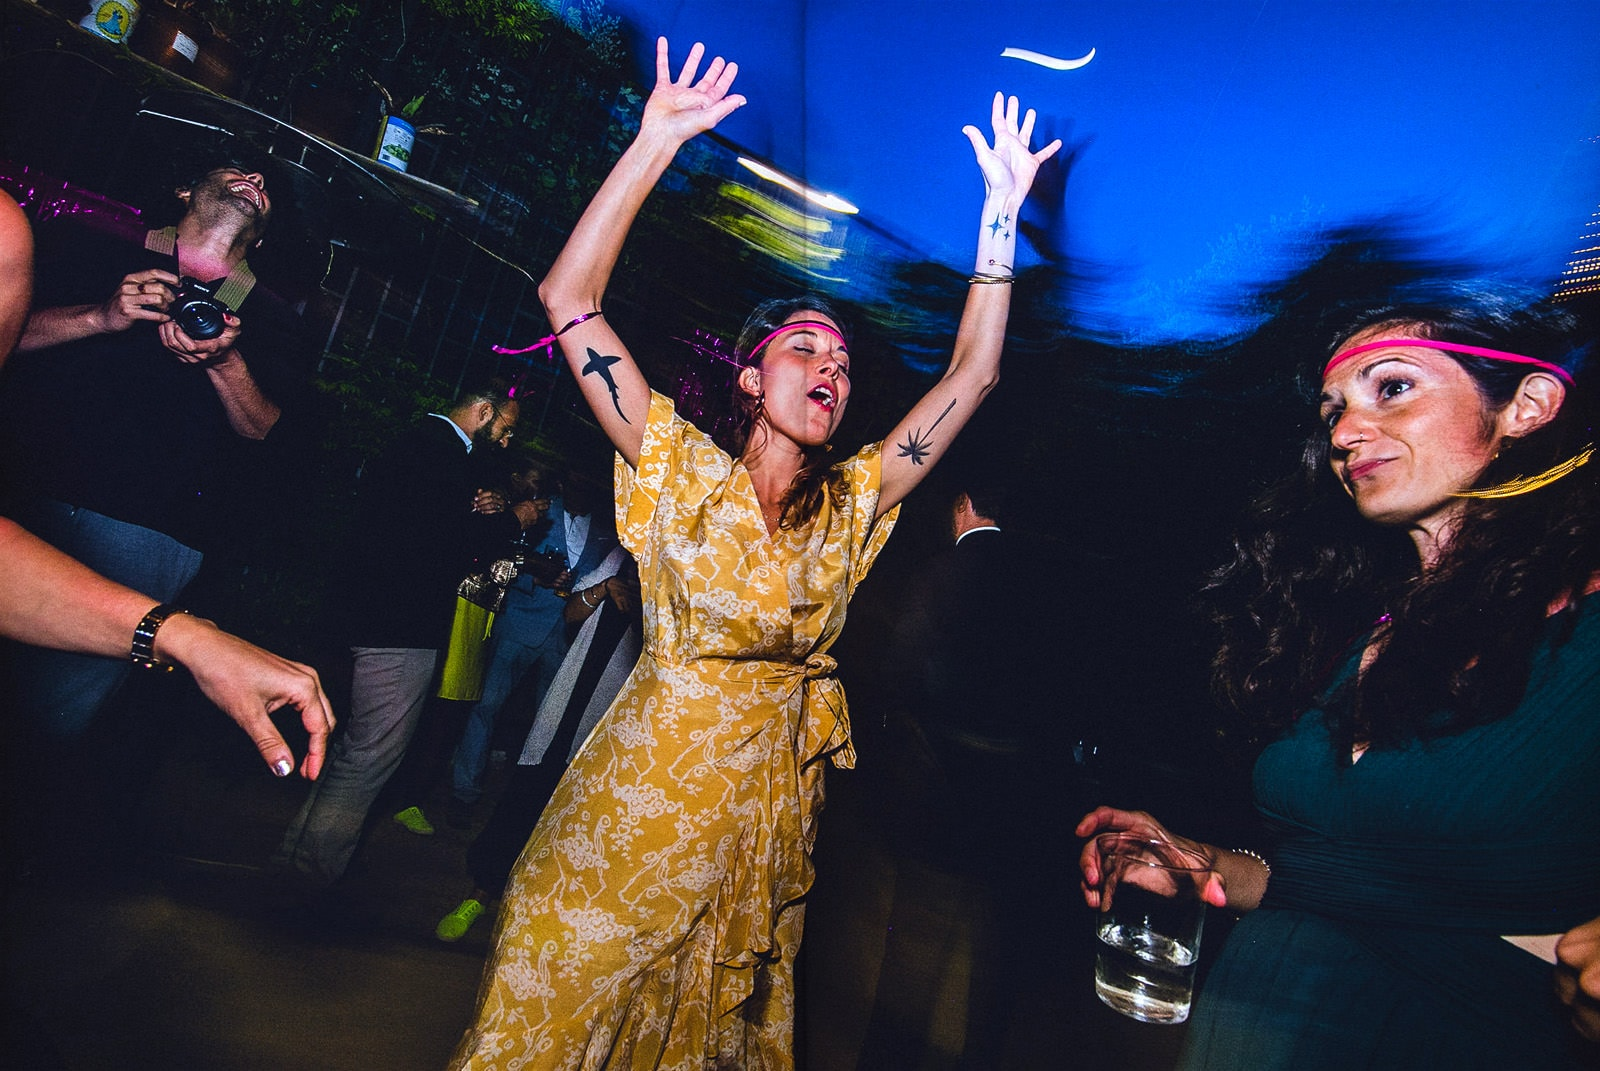 people dancing like crazy at a wedding in barcelona